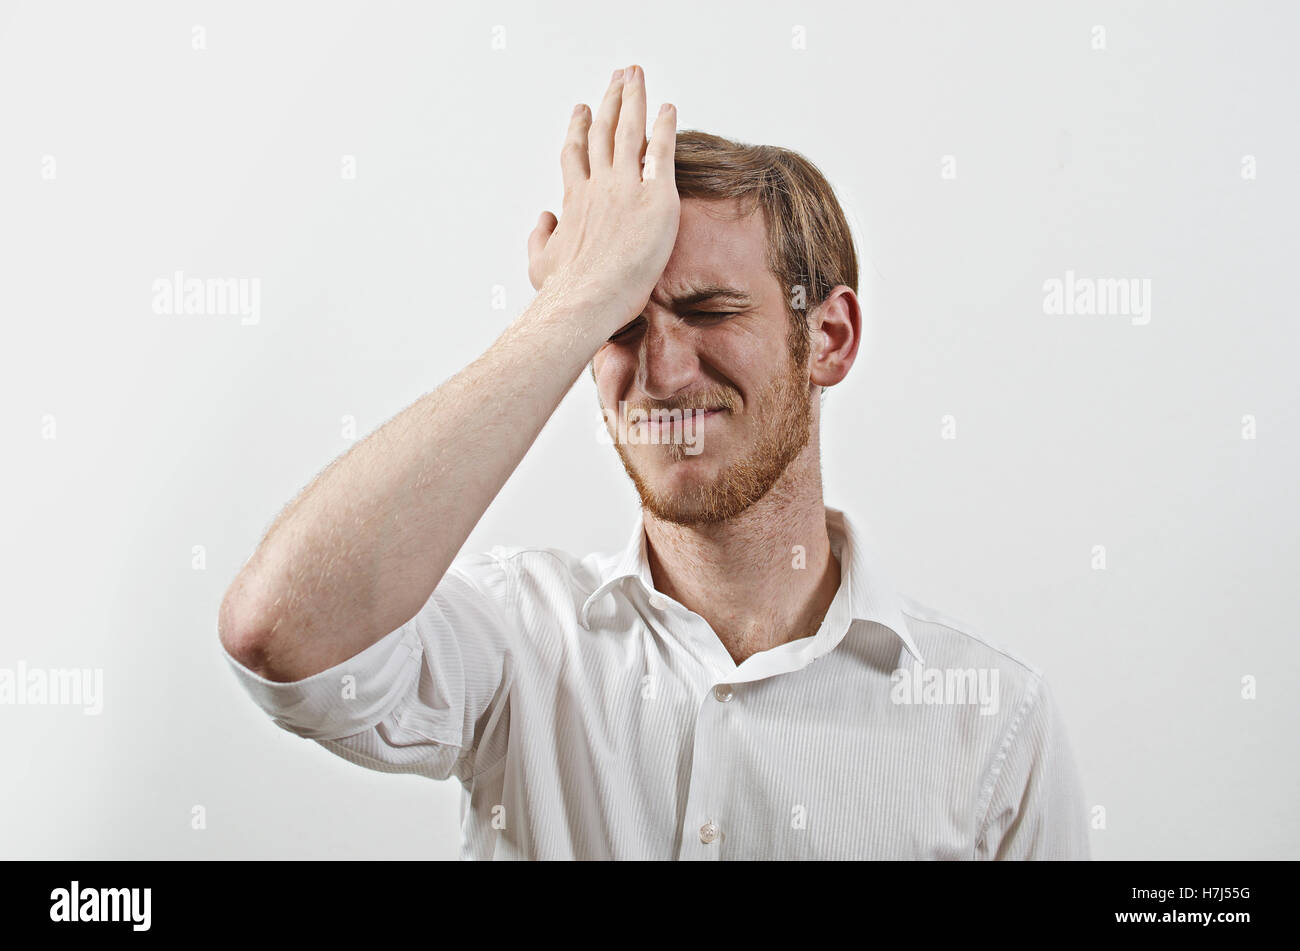 Young Adult Male Wearing White Shirt Gesturing He Has Made a Big Mistake - Stock Image